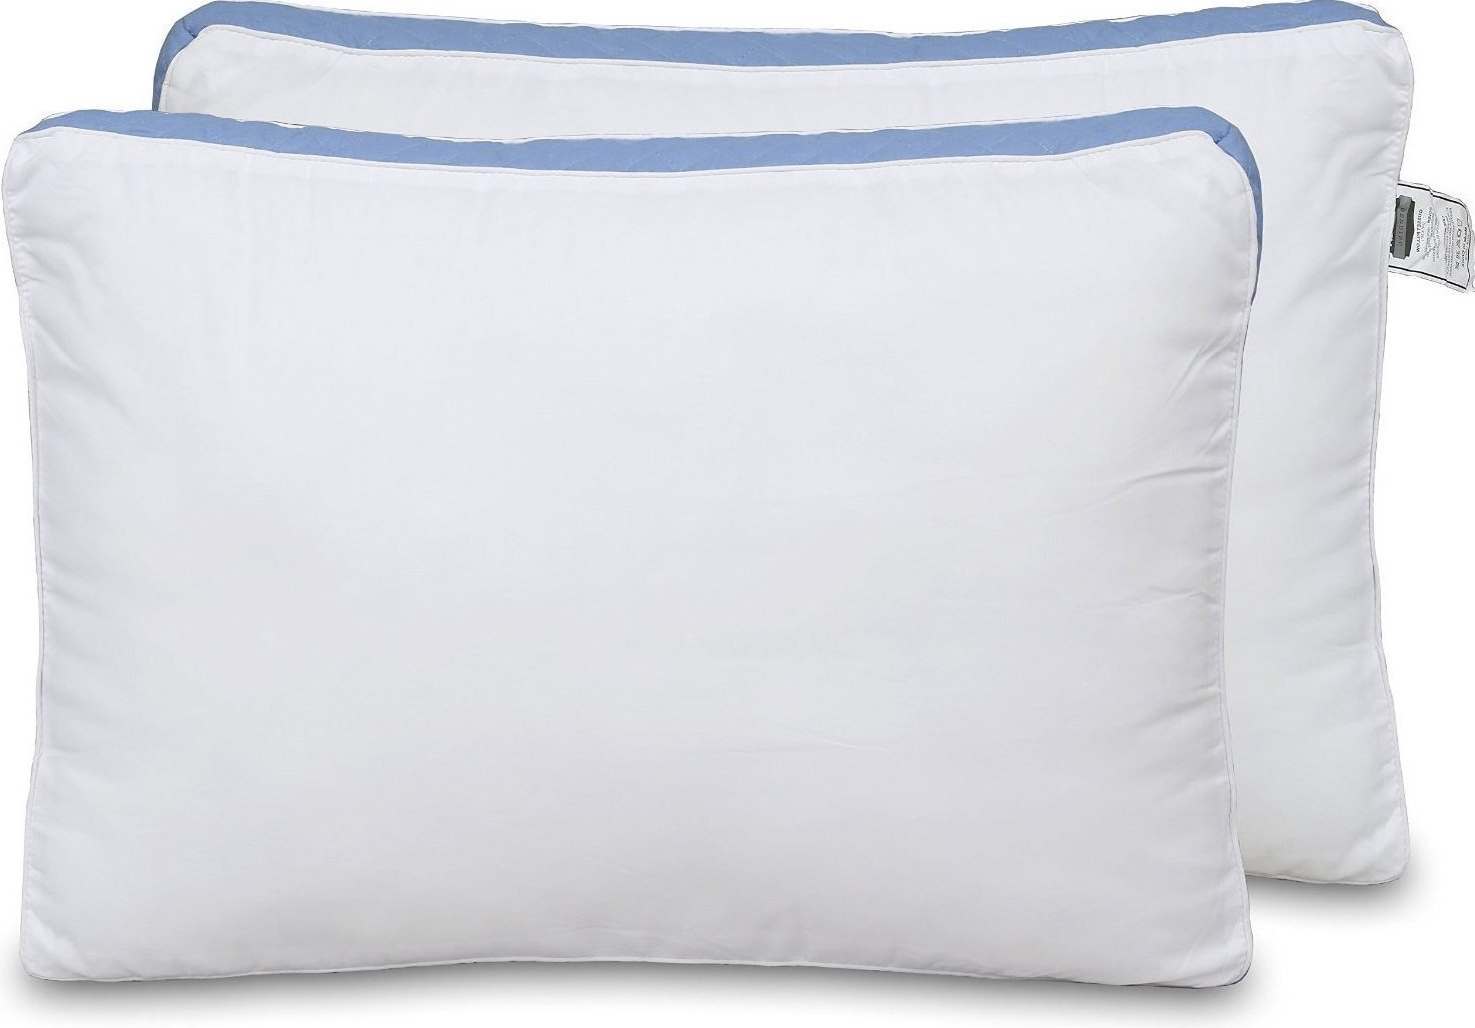 utopia bedding bed pillows pack of 2 side back sleepers gusseted quilted pillow king